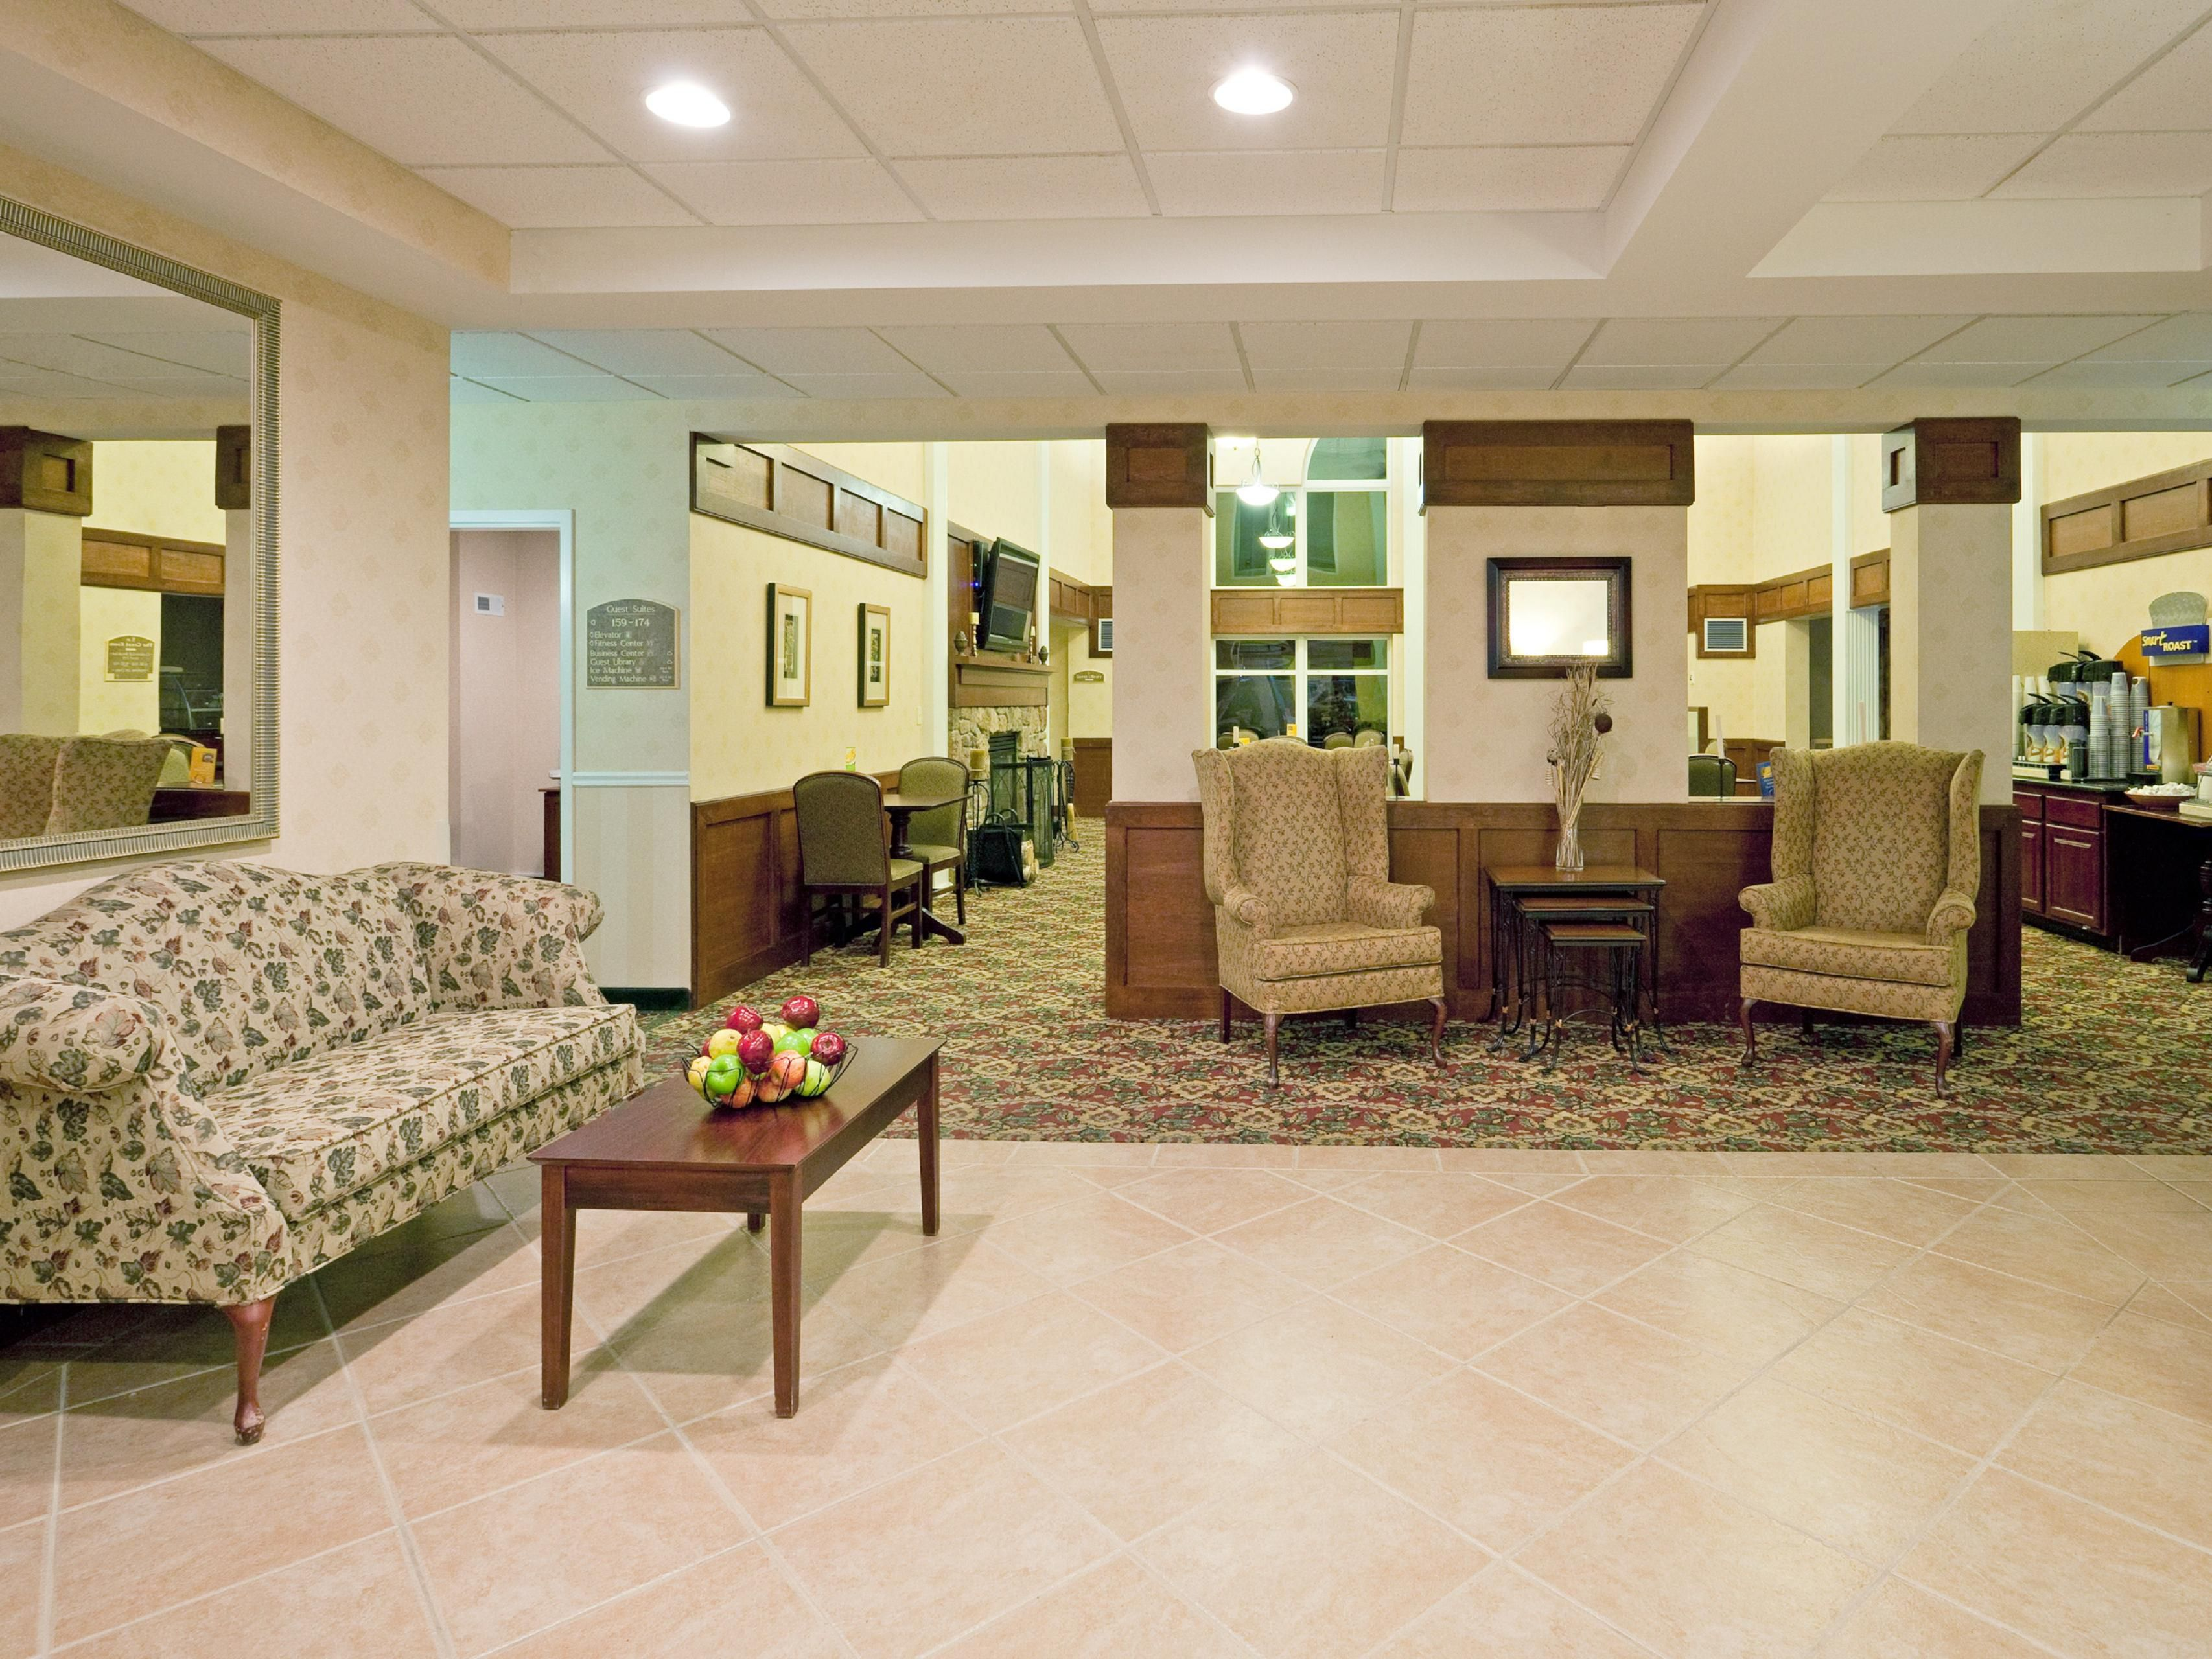 Welcome to the Holiday Inn Express & Suites White River Junction